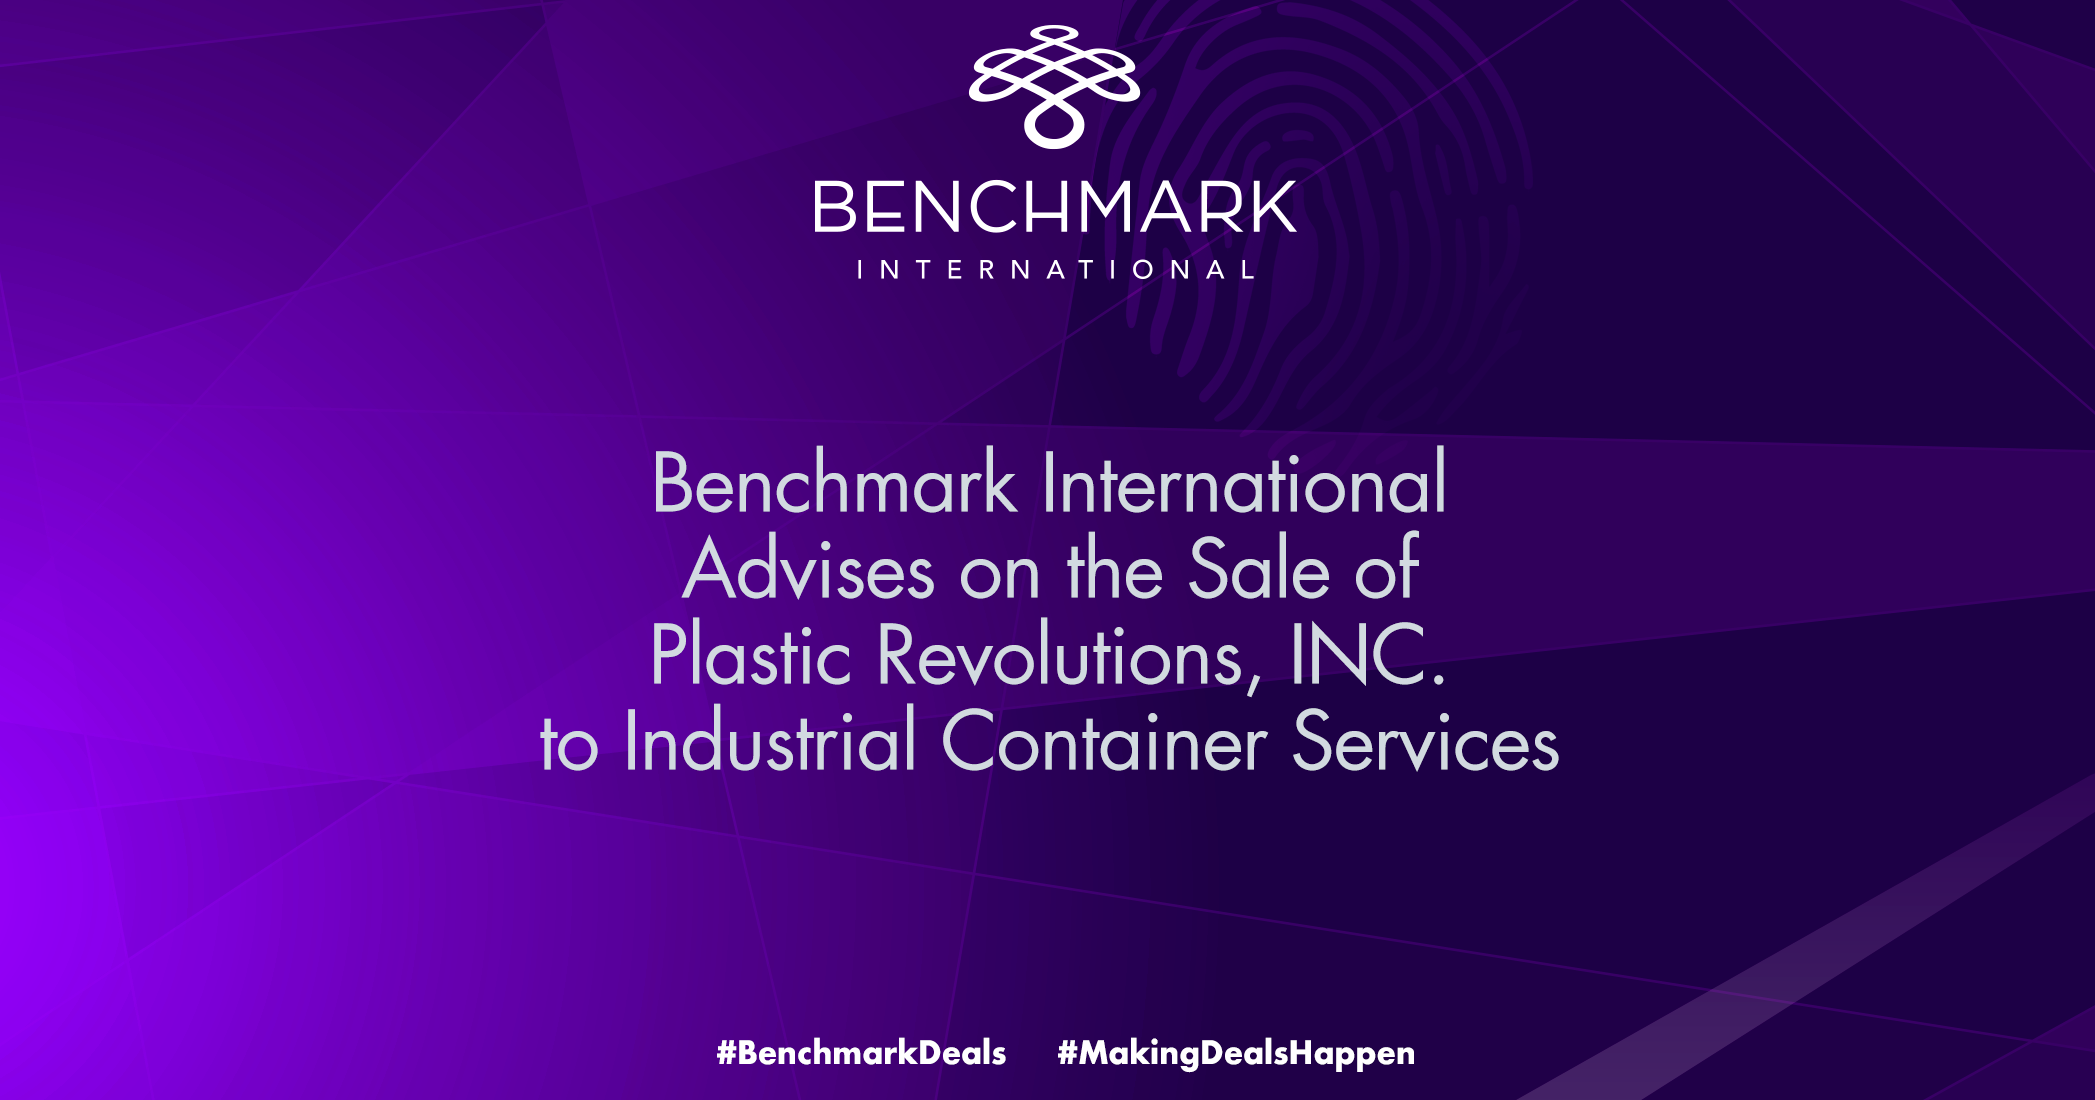 Benchmark International has successfully facilitated the acquisition of Plastic Revolutions, Inc. to Industrial Container Services